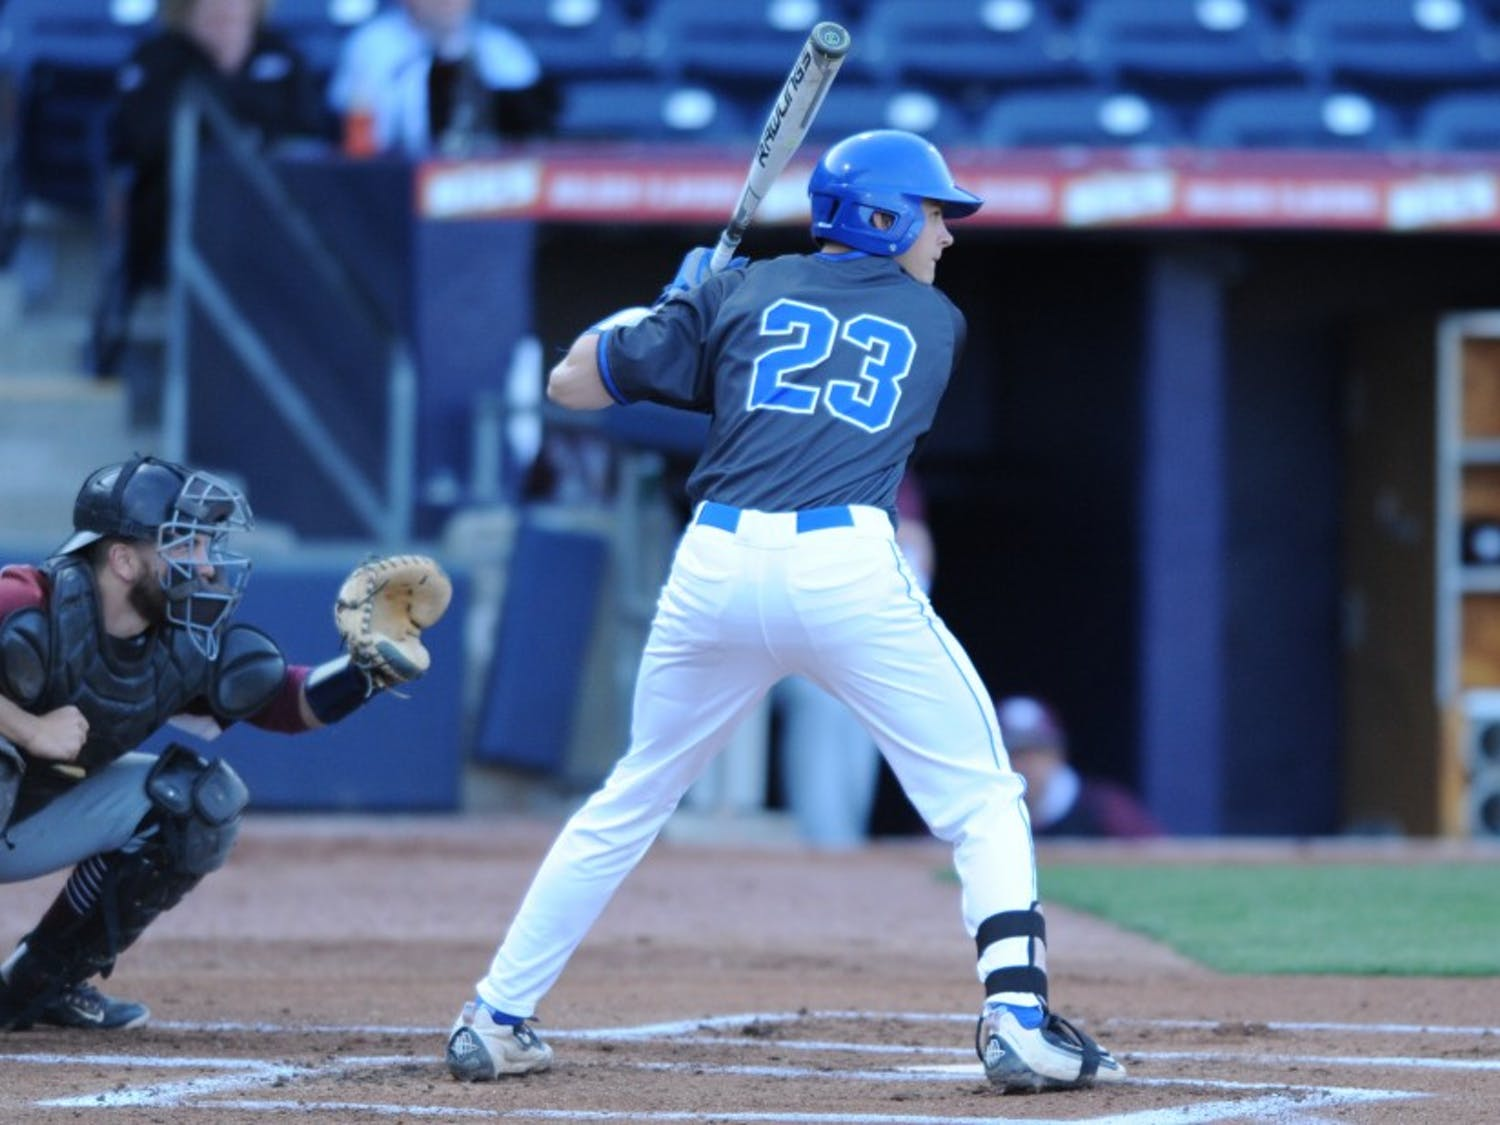 Freshman Chris Proctor went 2-for-3 at the plate and drove in two runs against N.C. Central as Duke picked up its third consecutive victory.